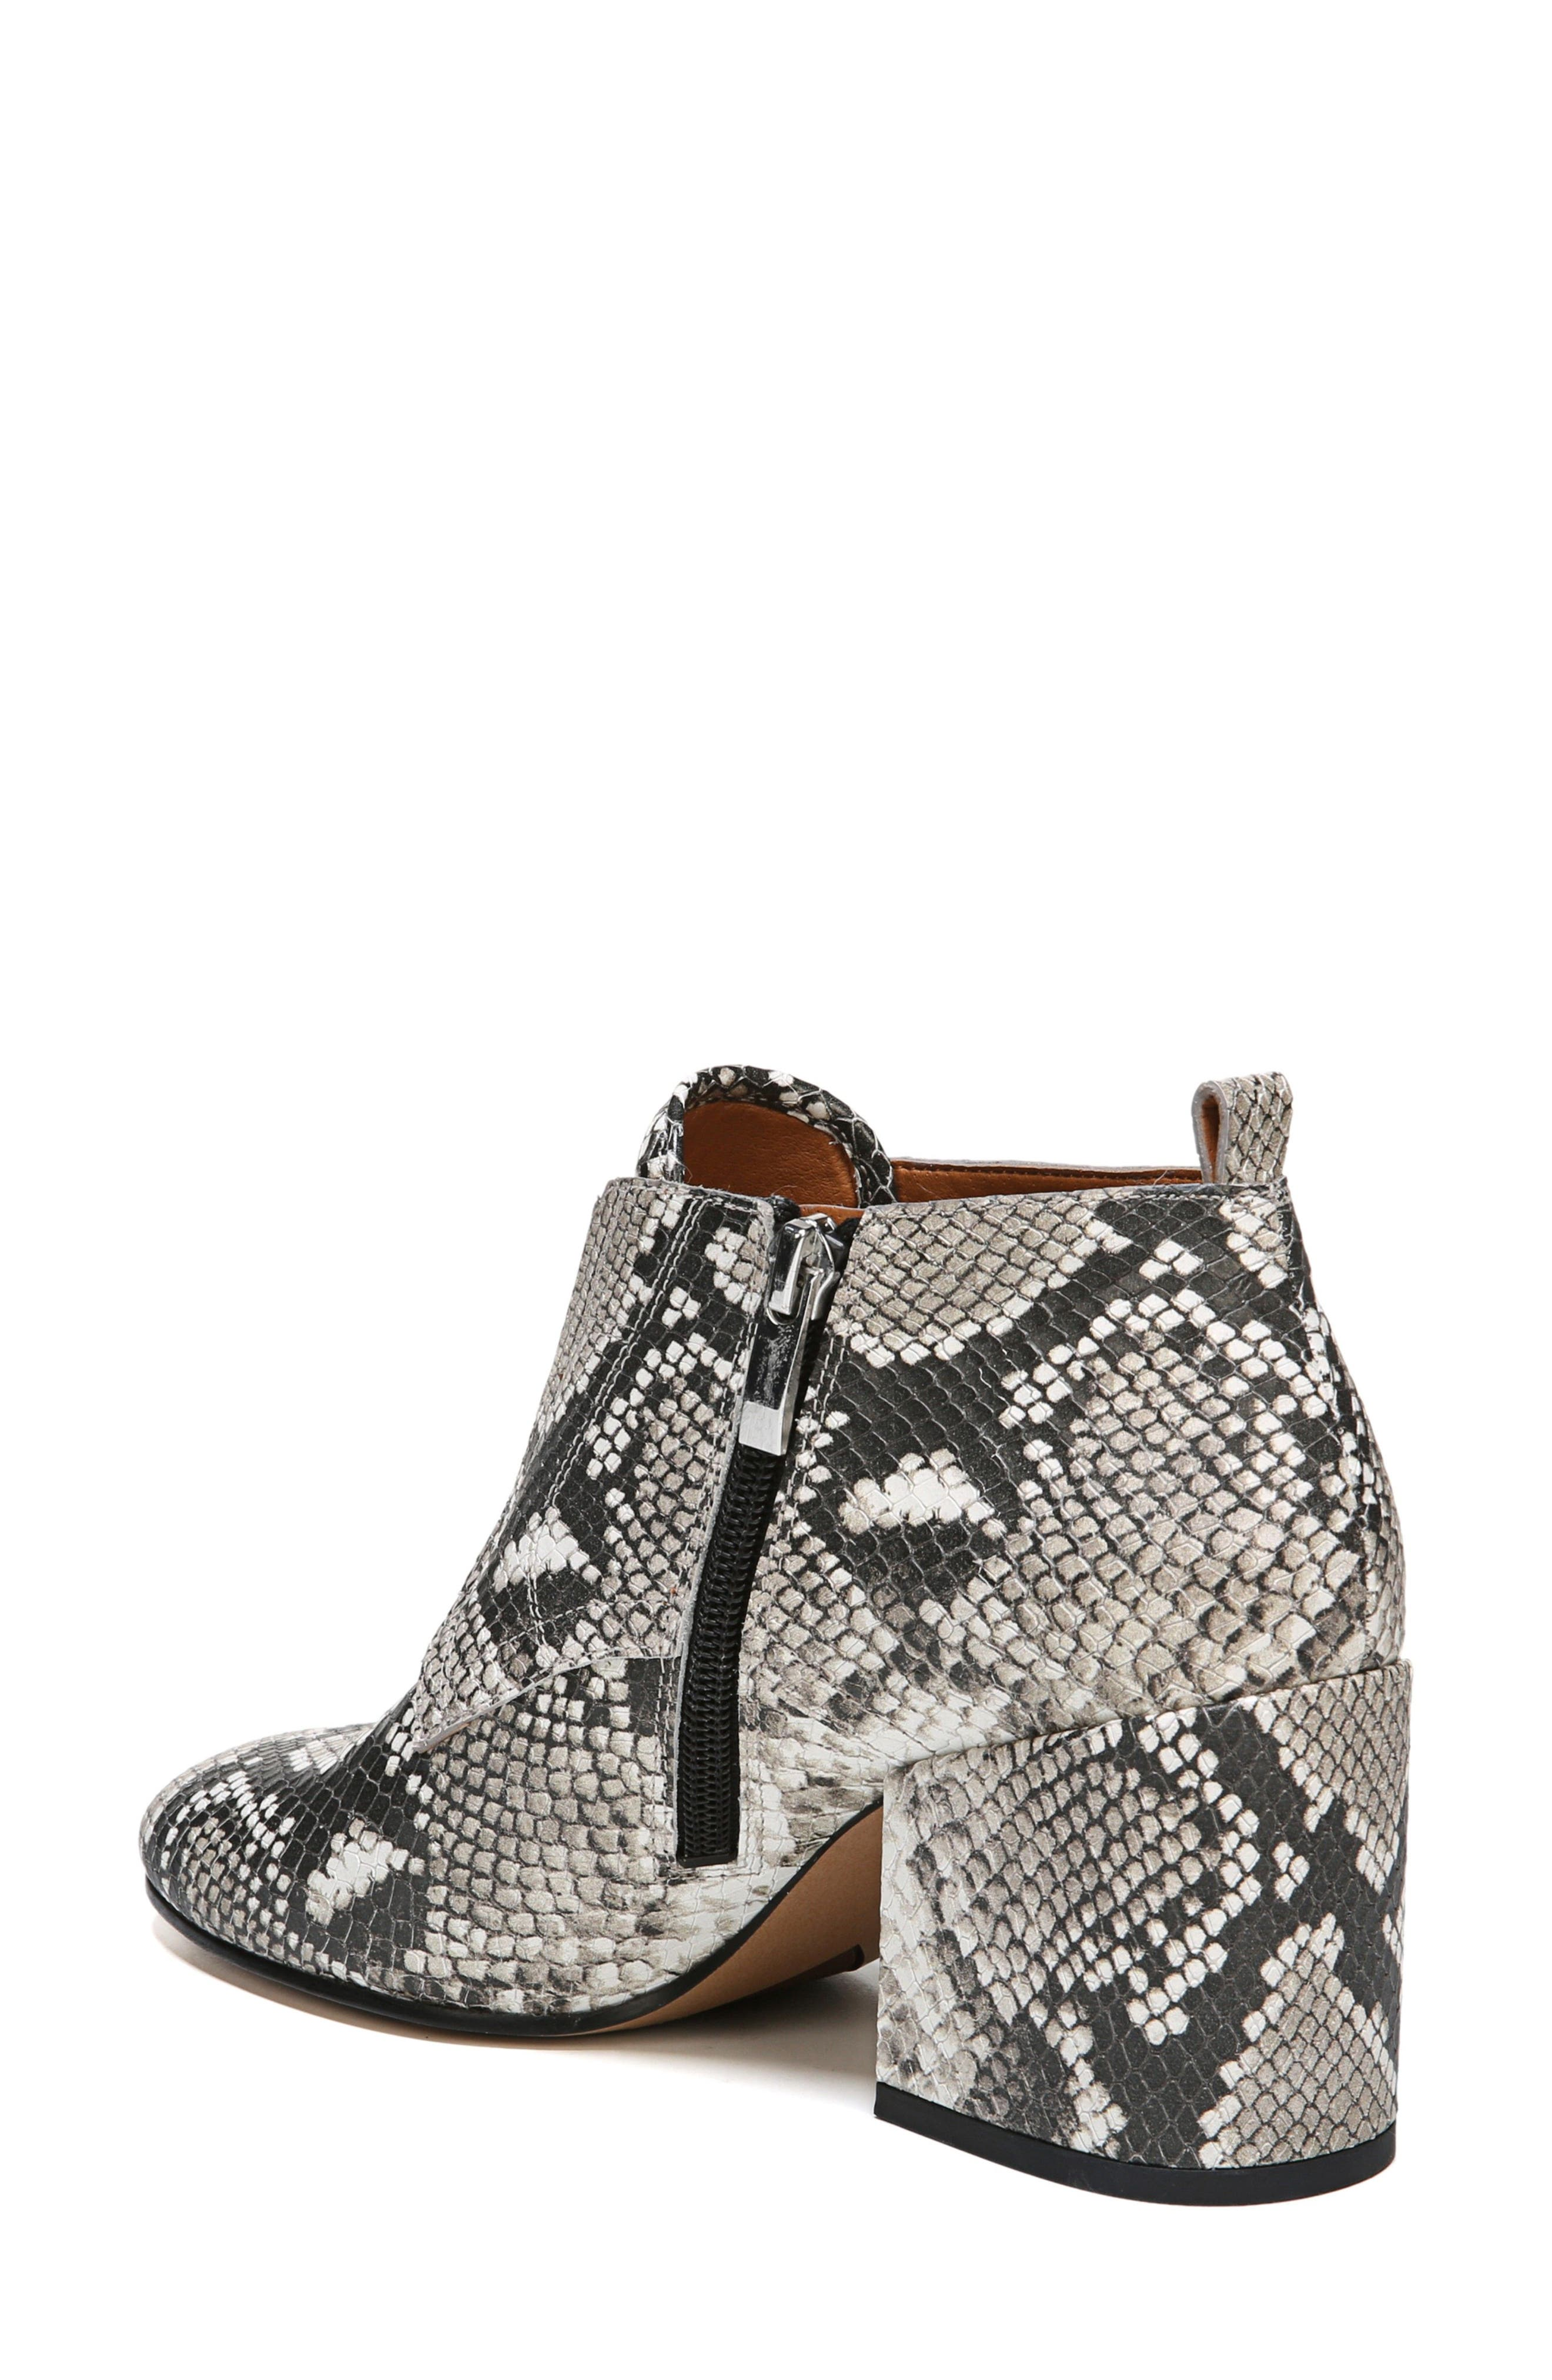 Alfie Bootie,                             Alternate thumbnail 2, color,                             Natural Snake Leather